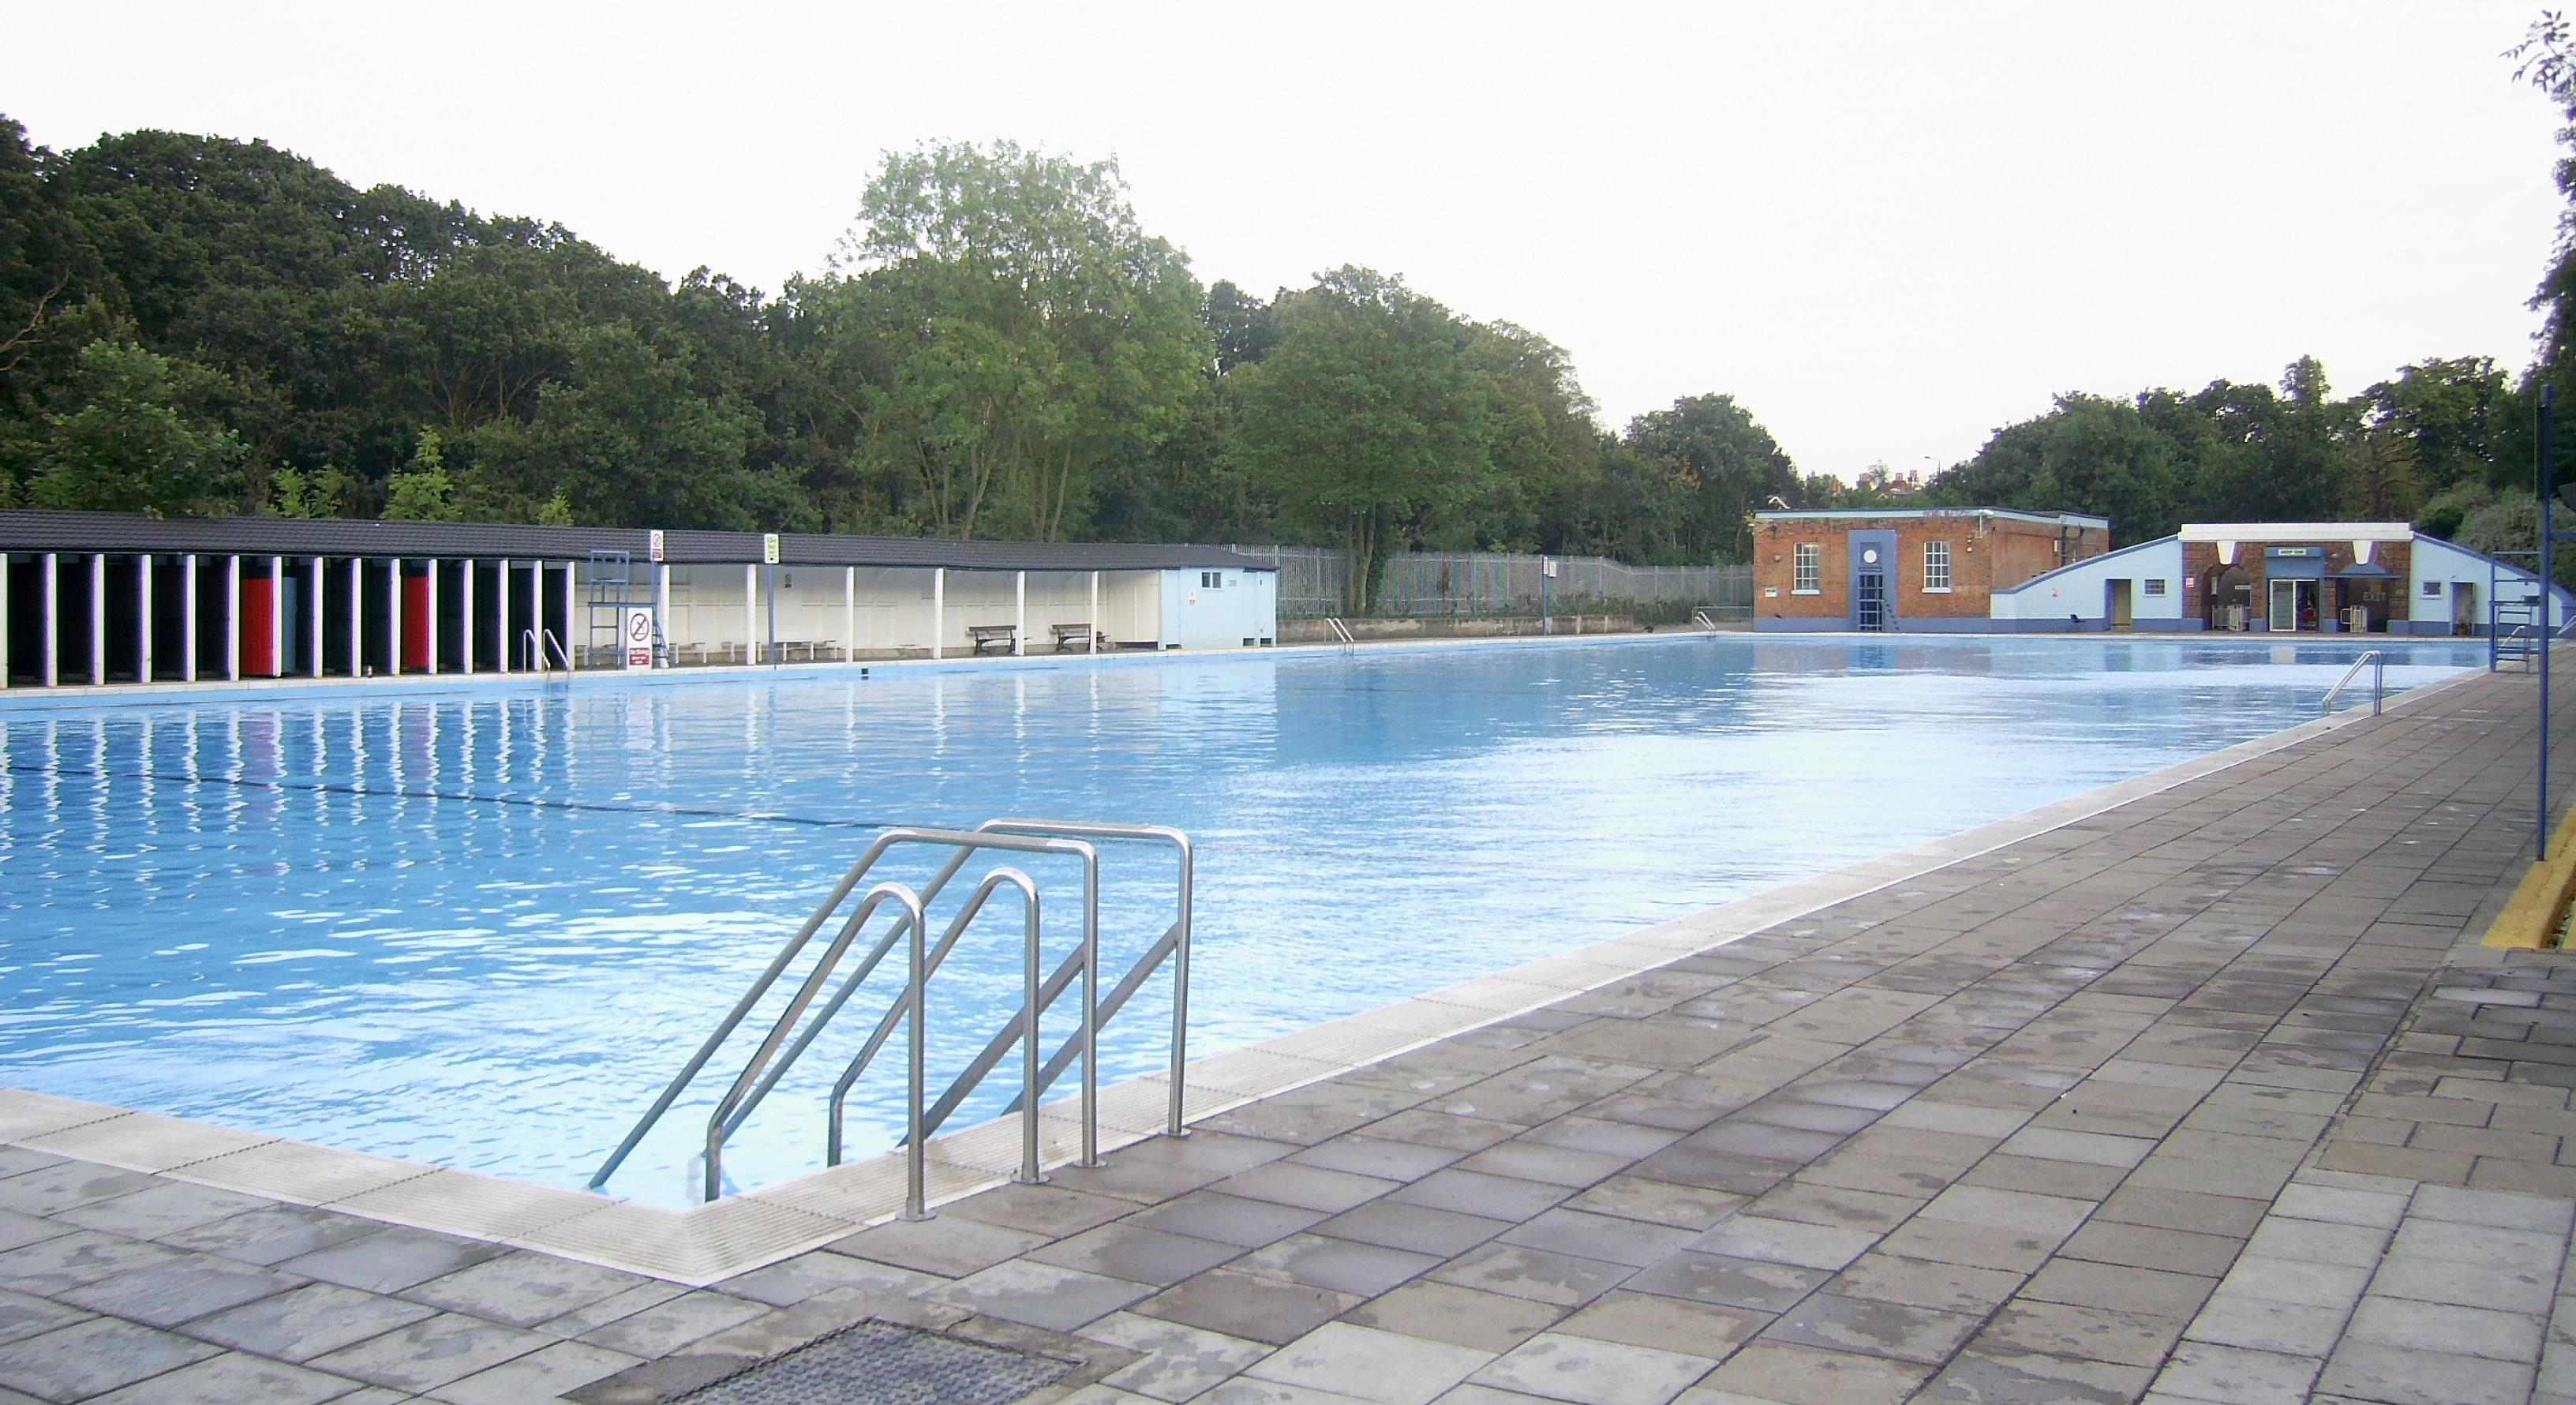 Outdoor swimming pools near newington green Houses for sale in london with swimming pool